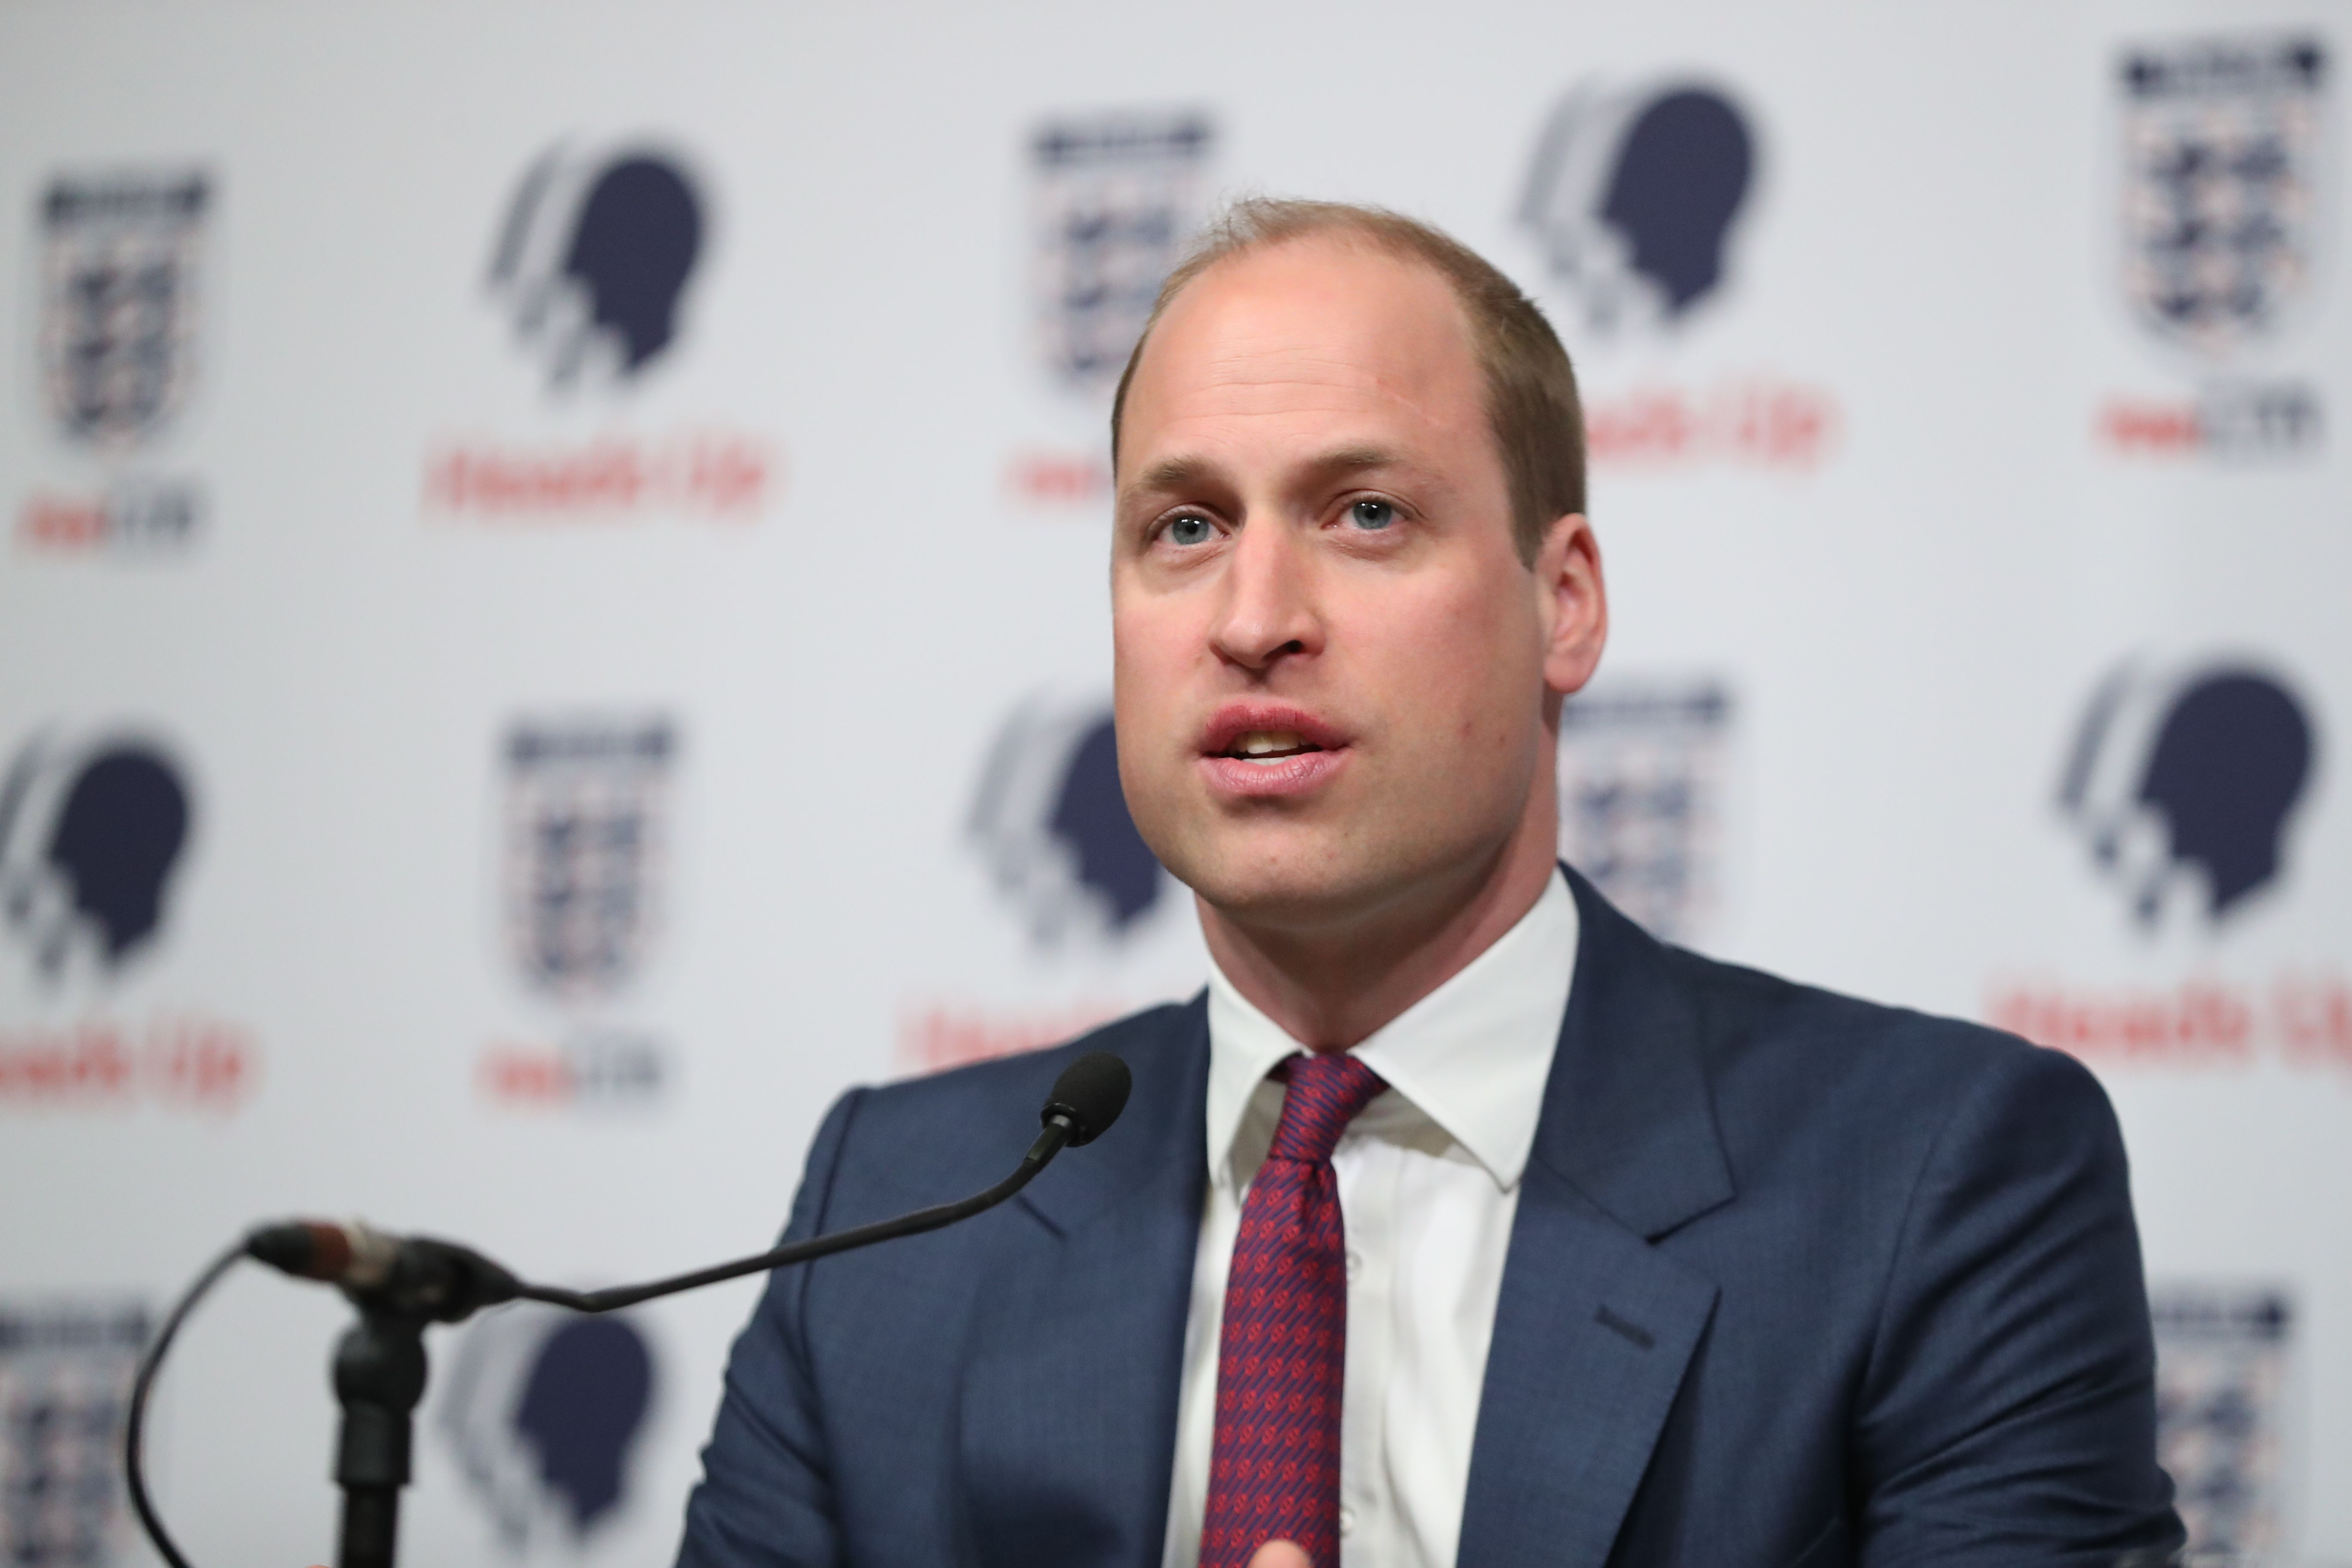 Prince William Is Making a Documentary About Mental Health Awareness